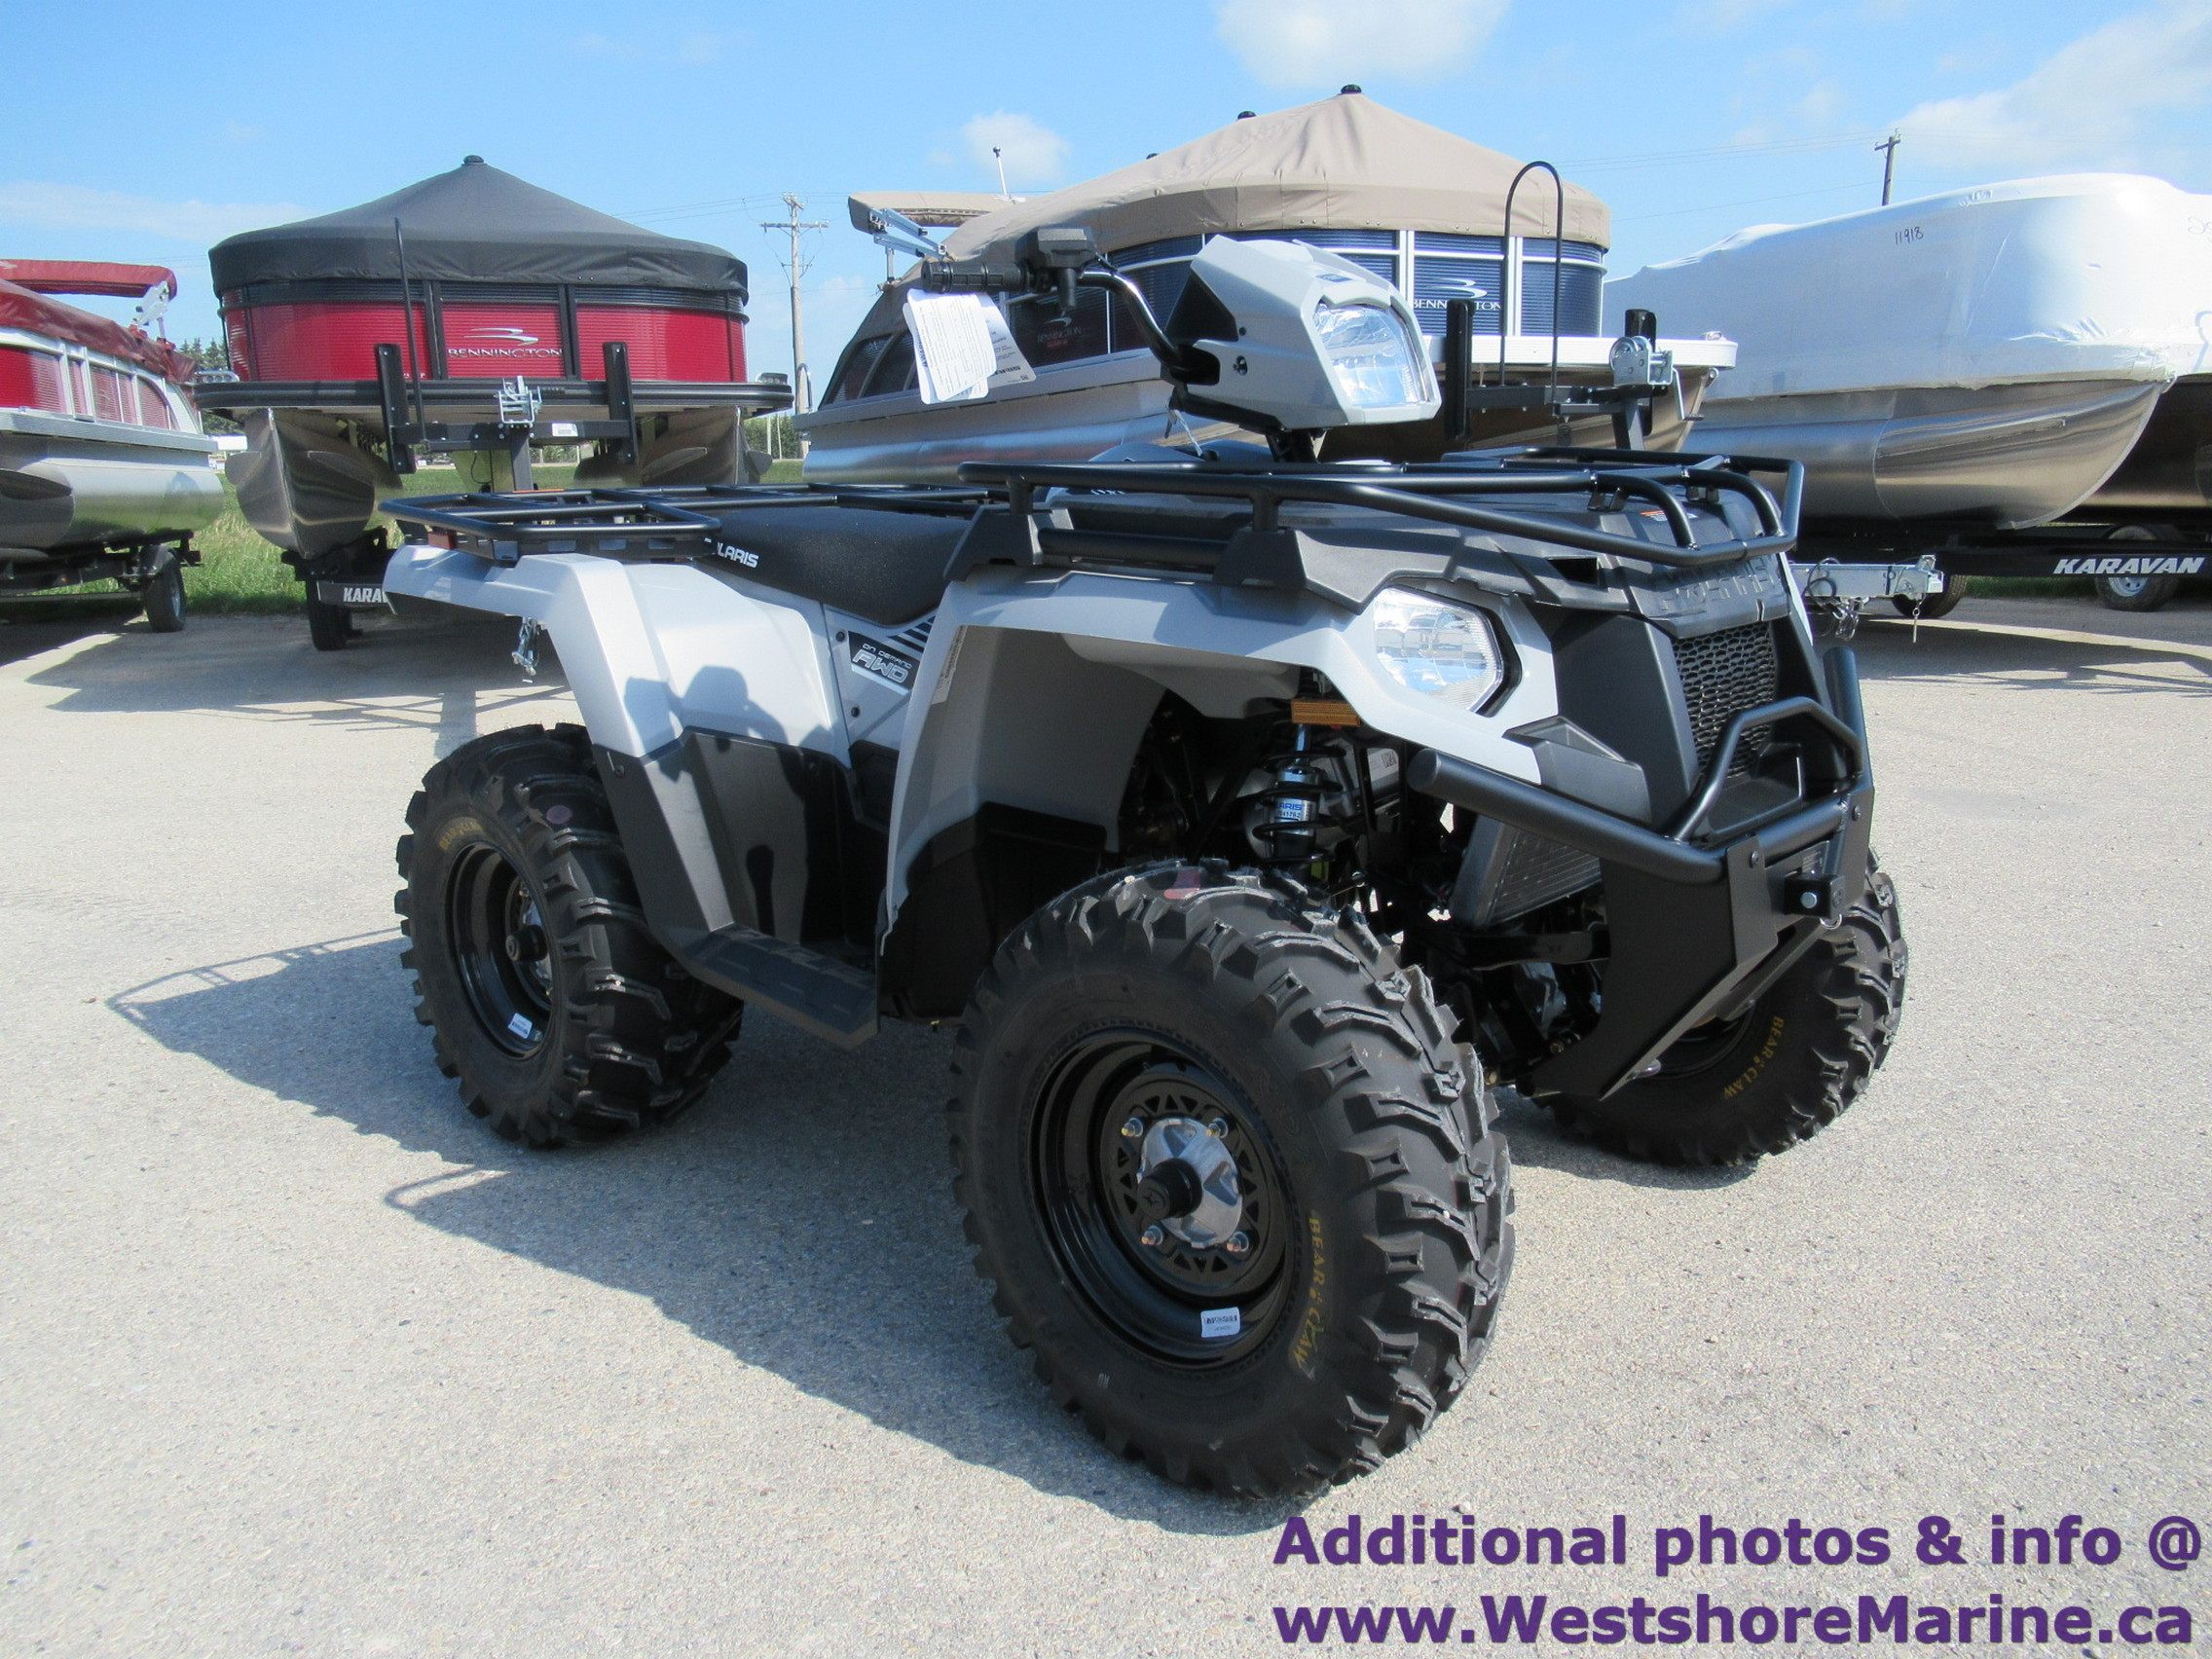 New 2019 Polaris 570 SPORTSMAN UTILITY GHOST GREY W/ EPS & 3 YEAR WARRANTY!